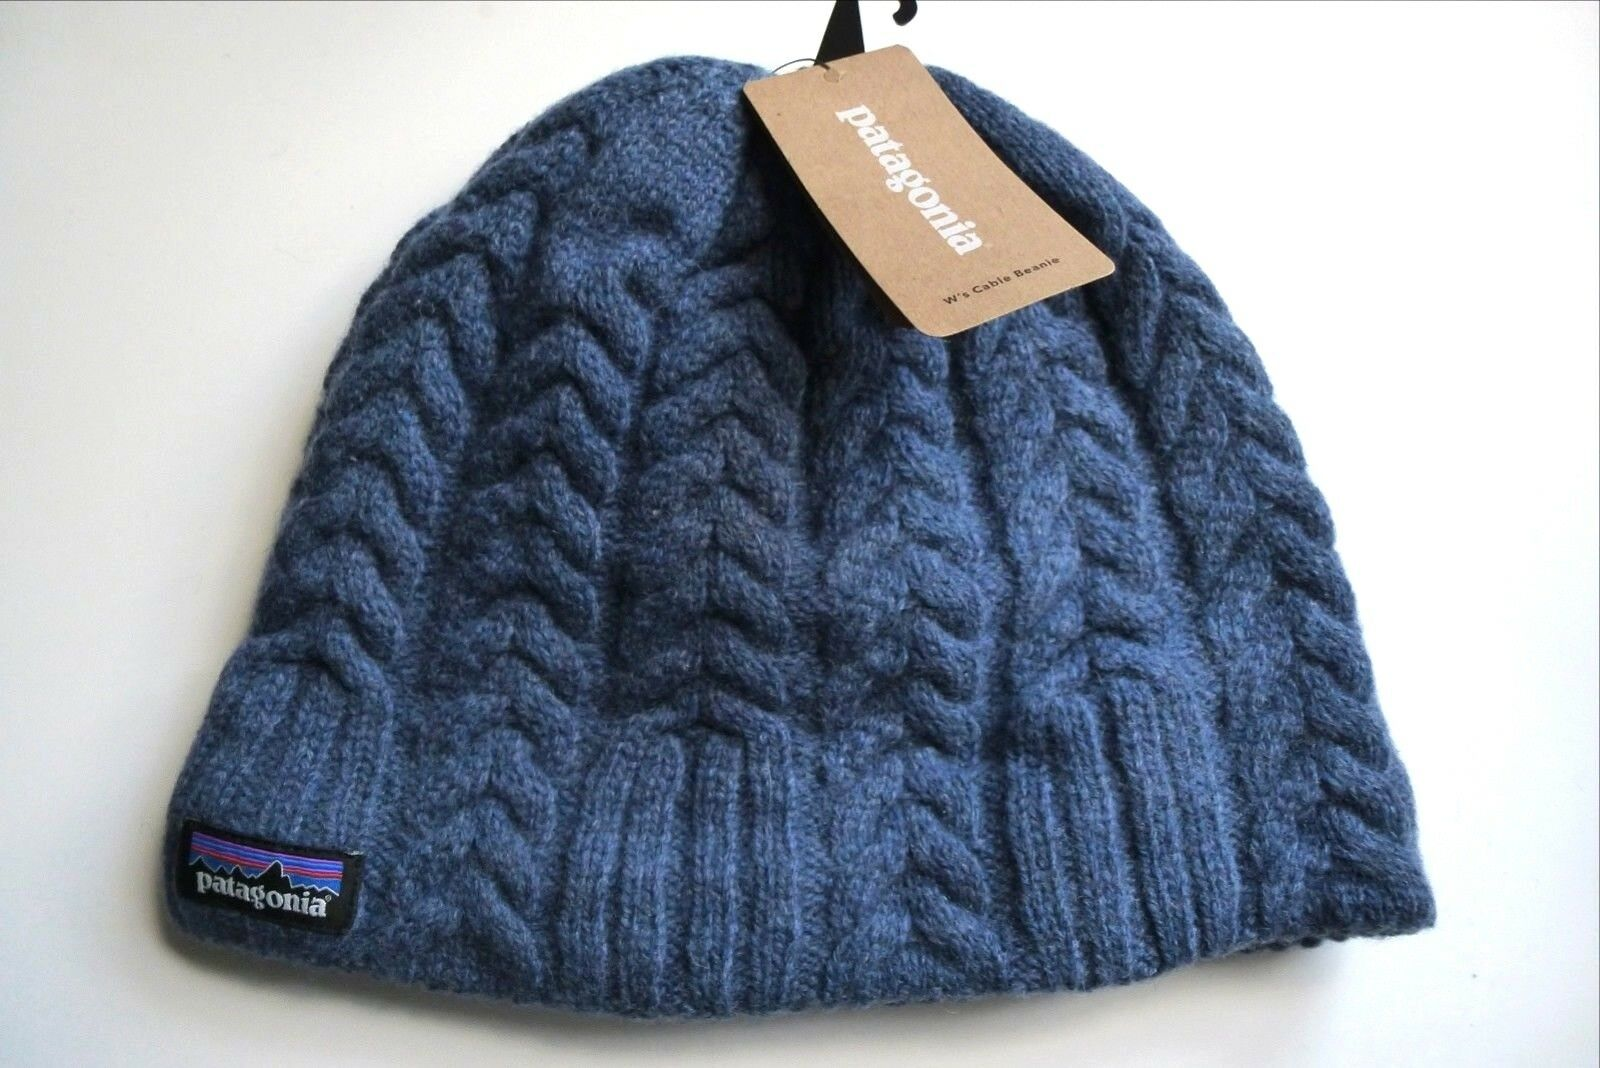 PATAGONIA bluee Heather Wool Cable Fleece Lined BEANIE Hat Toque New Tag UNISEX